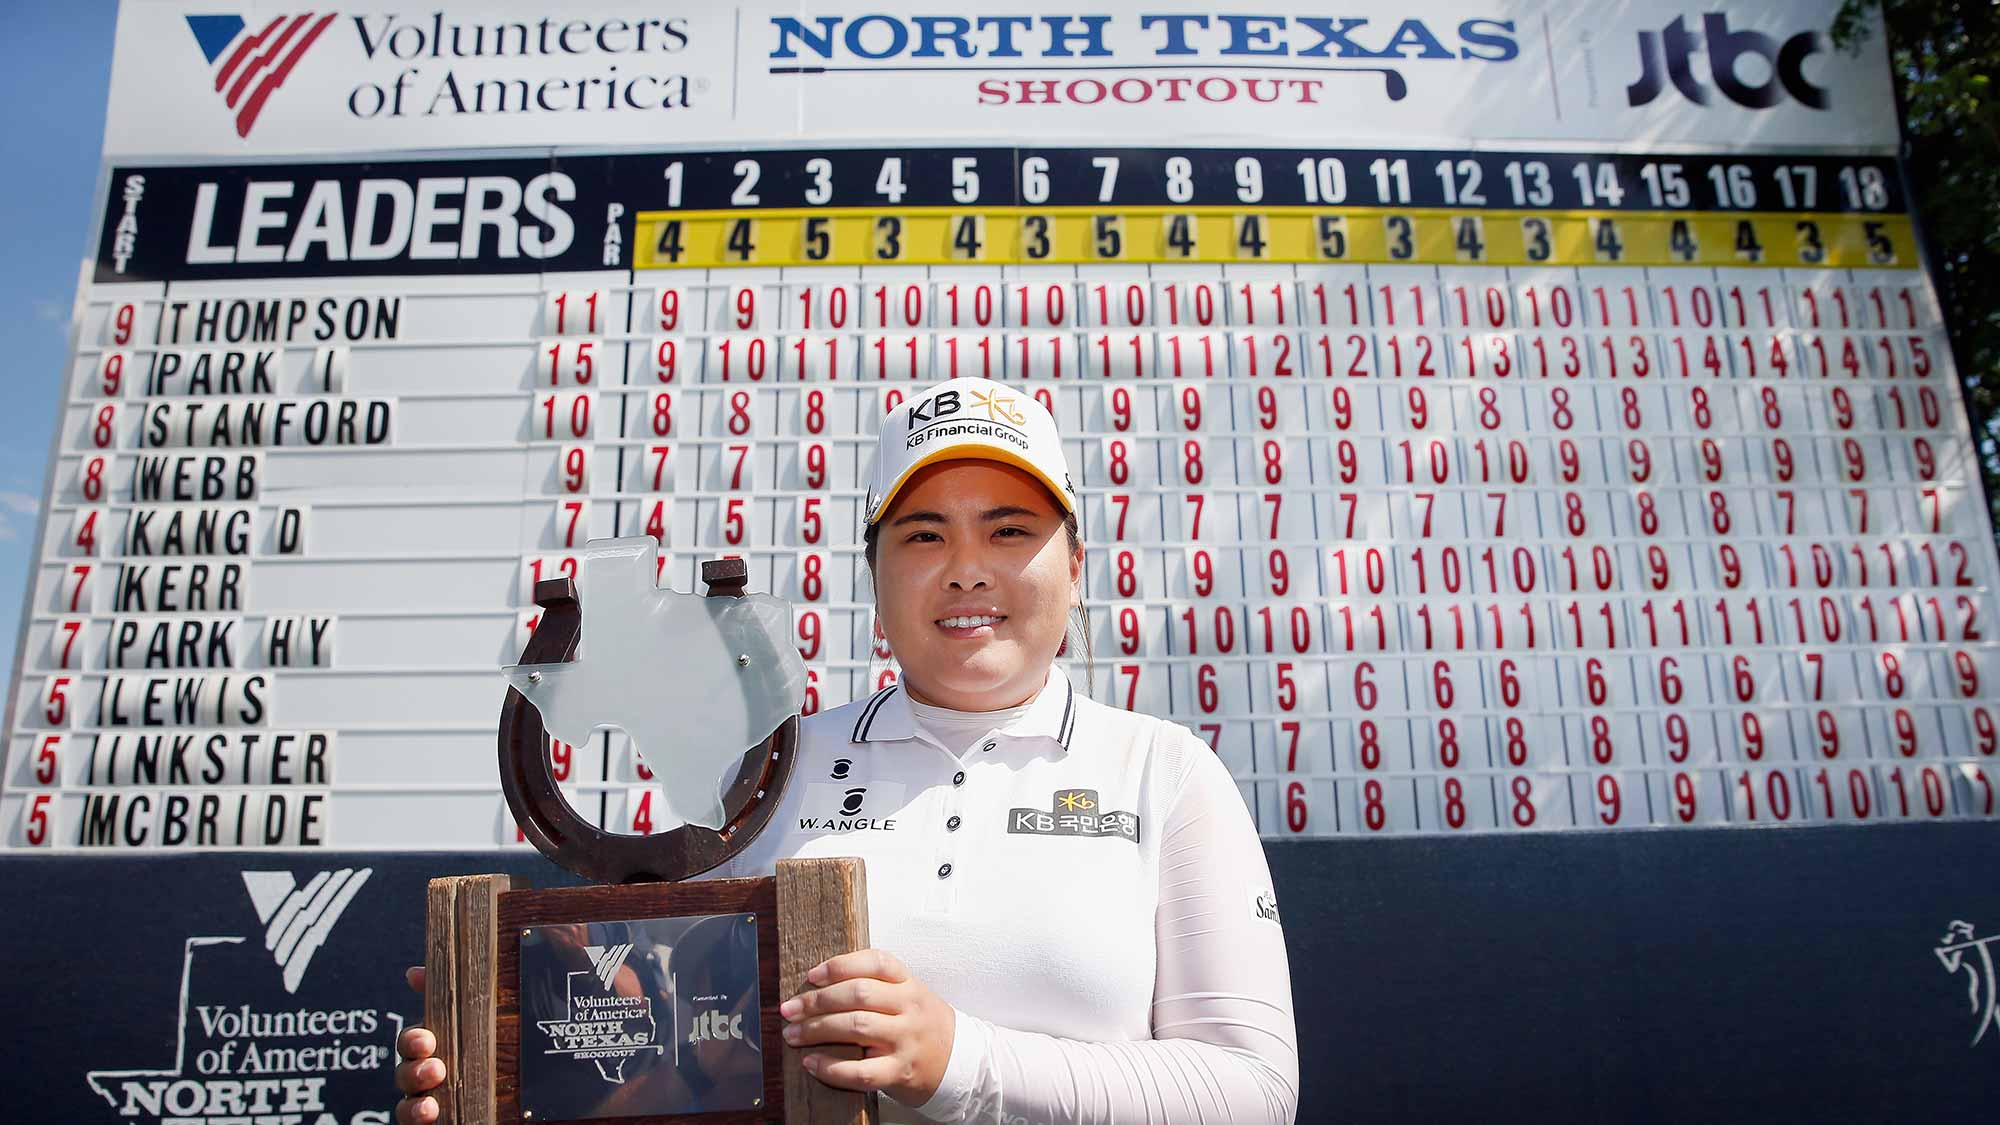 Inbee Park of South Korea poses with the trophy after winning the Final Round of the 2015 Volunteers of America North Texas Shootout Presented by JTBC